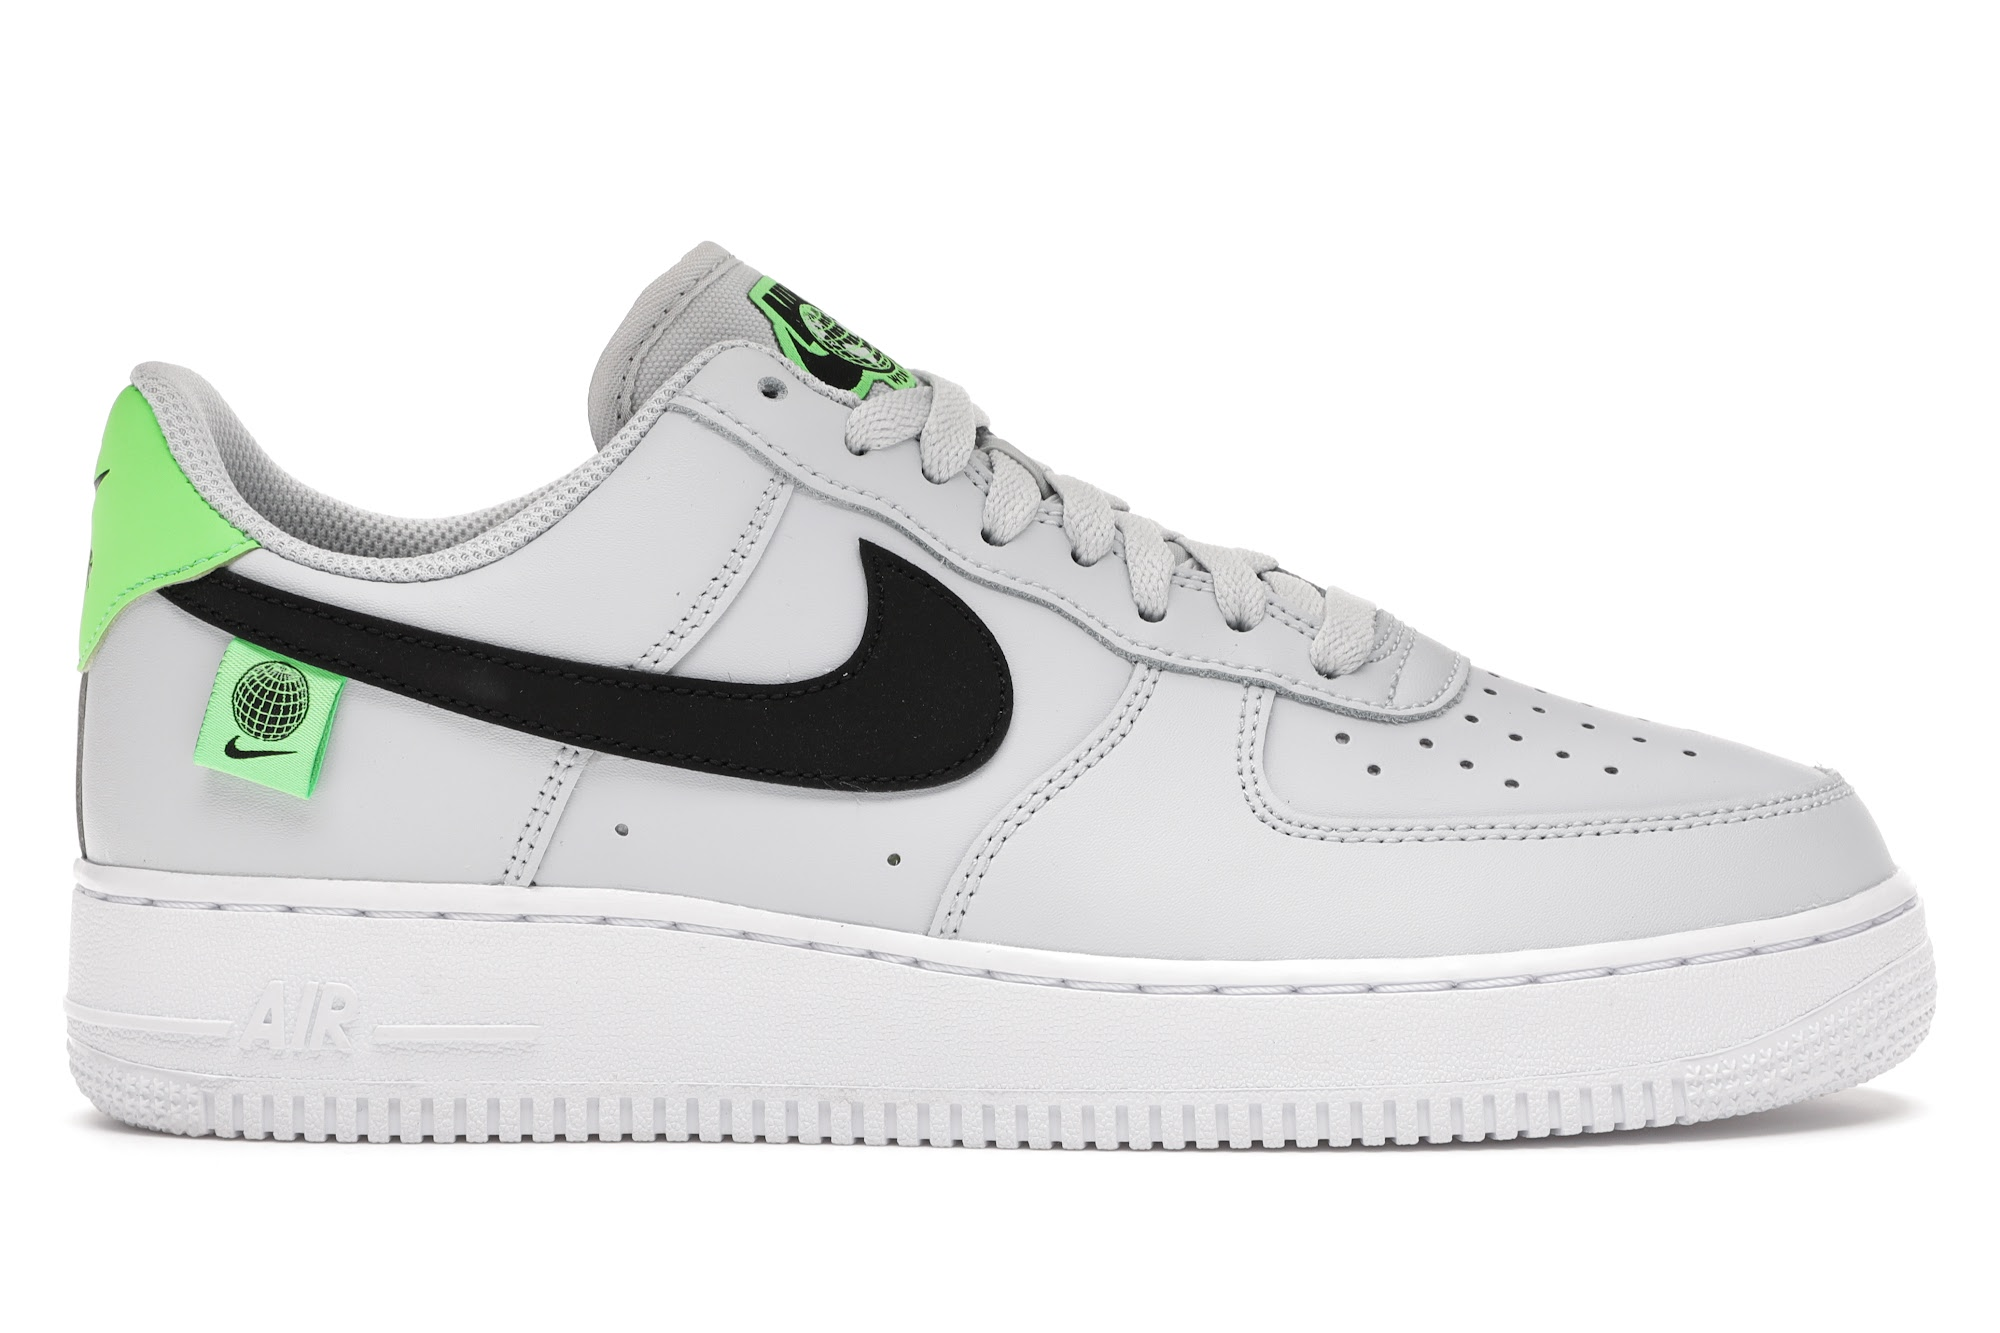 Hand made Nike Air Force 1 Low Worldwide Pure Platinum - CK7648 ...